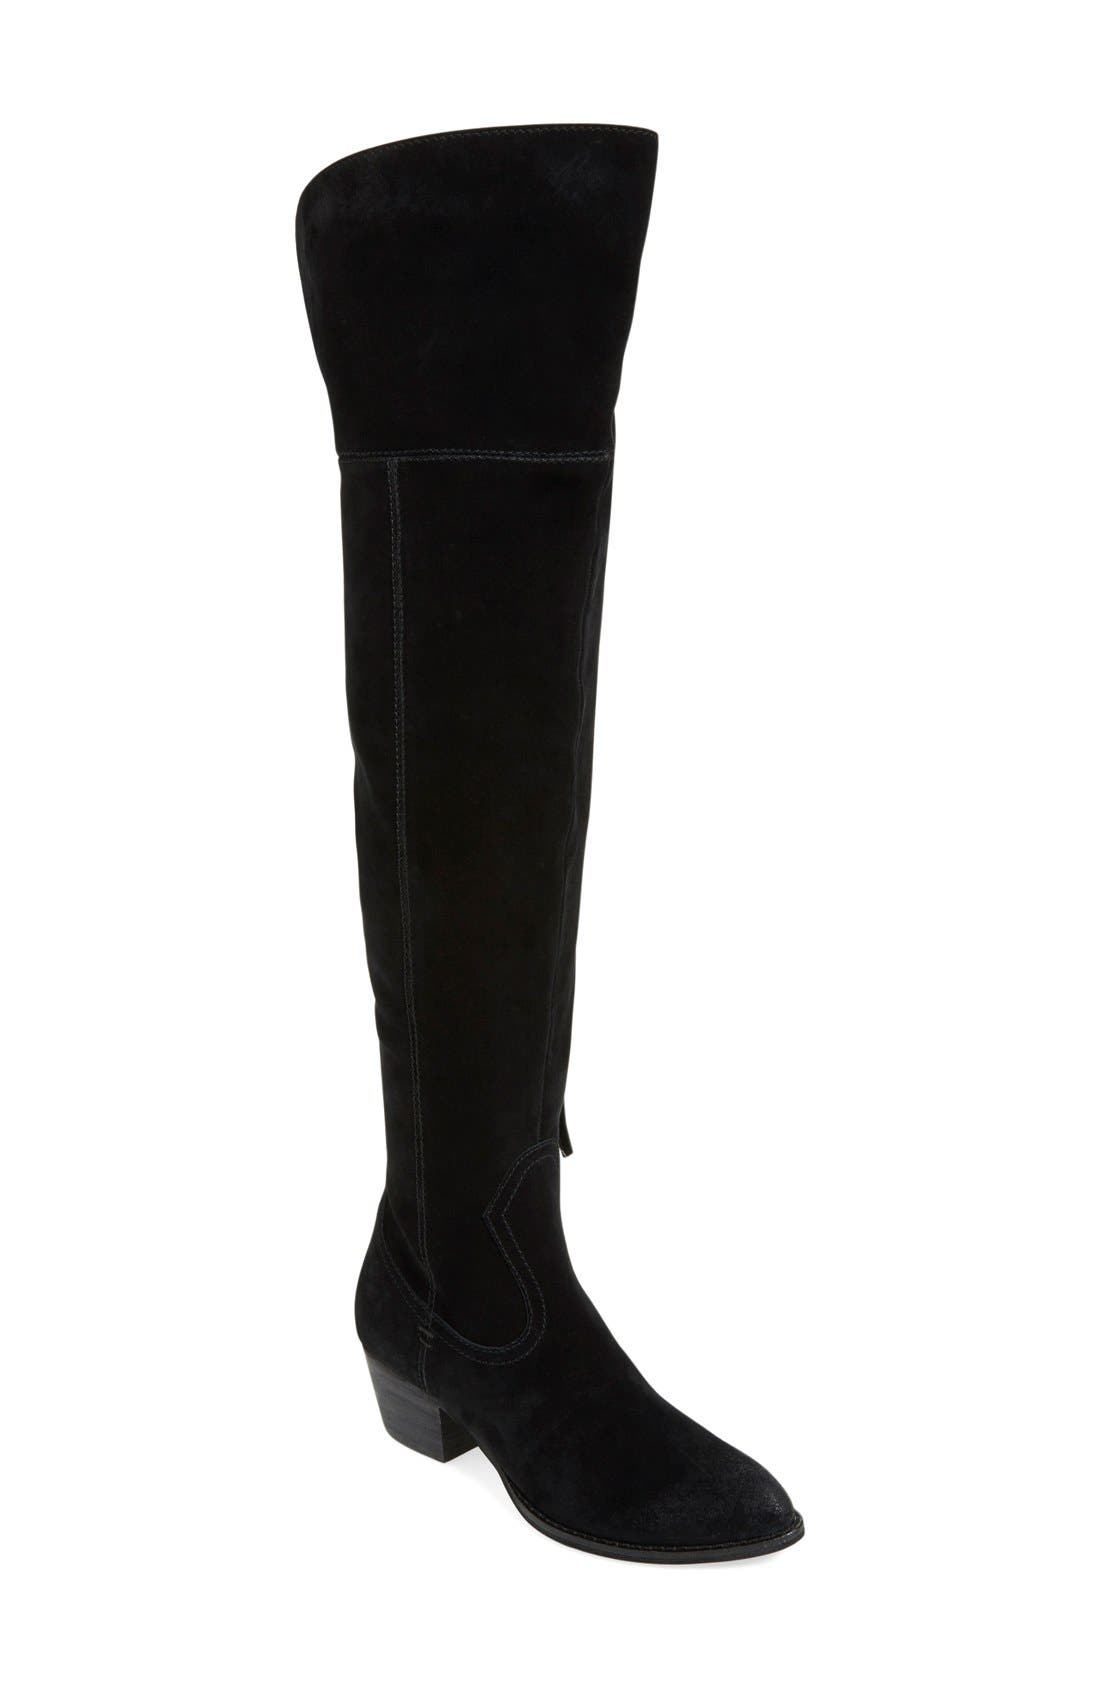 DOLCE VITA 'Silas' Over the Knee Boot, Main, color, 001